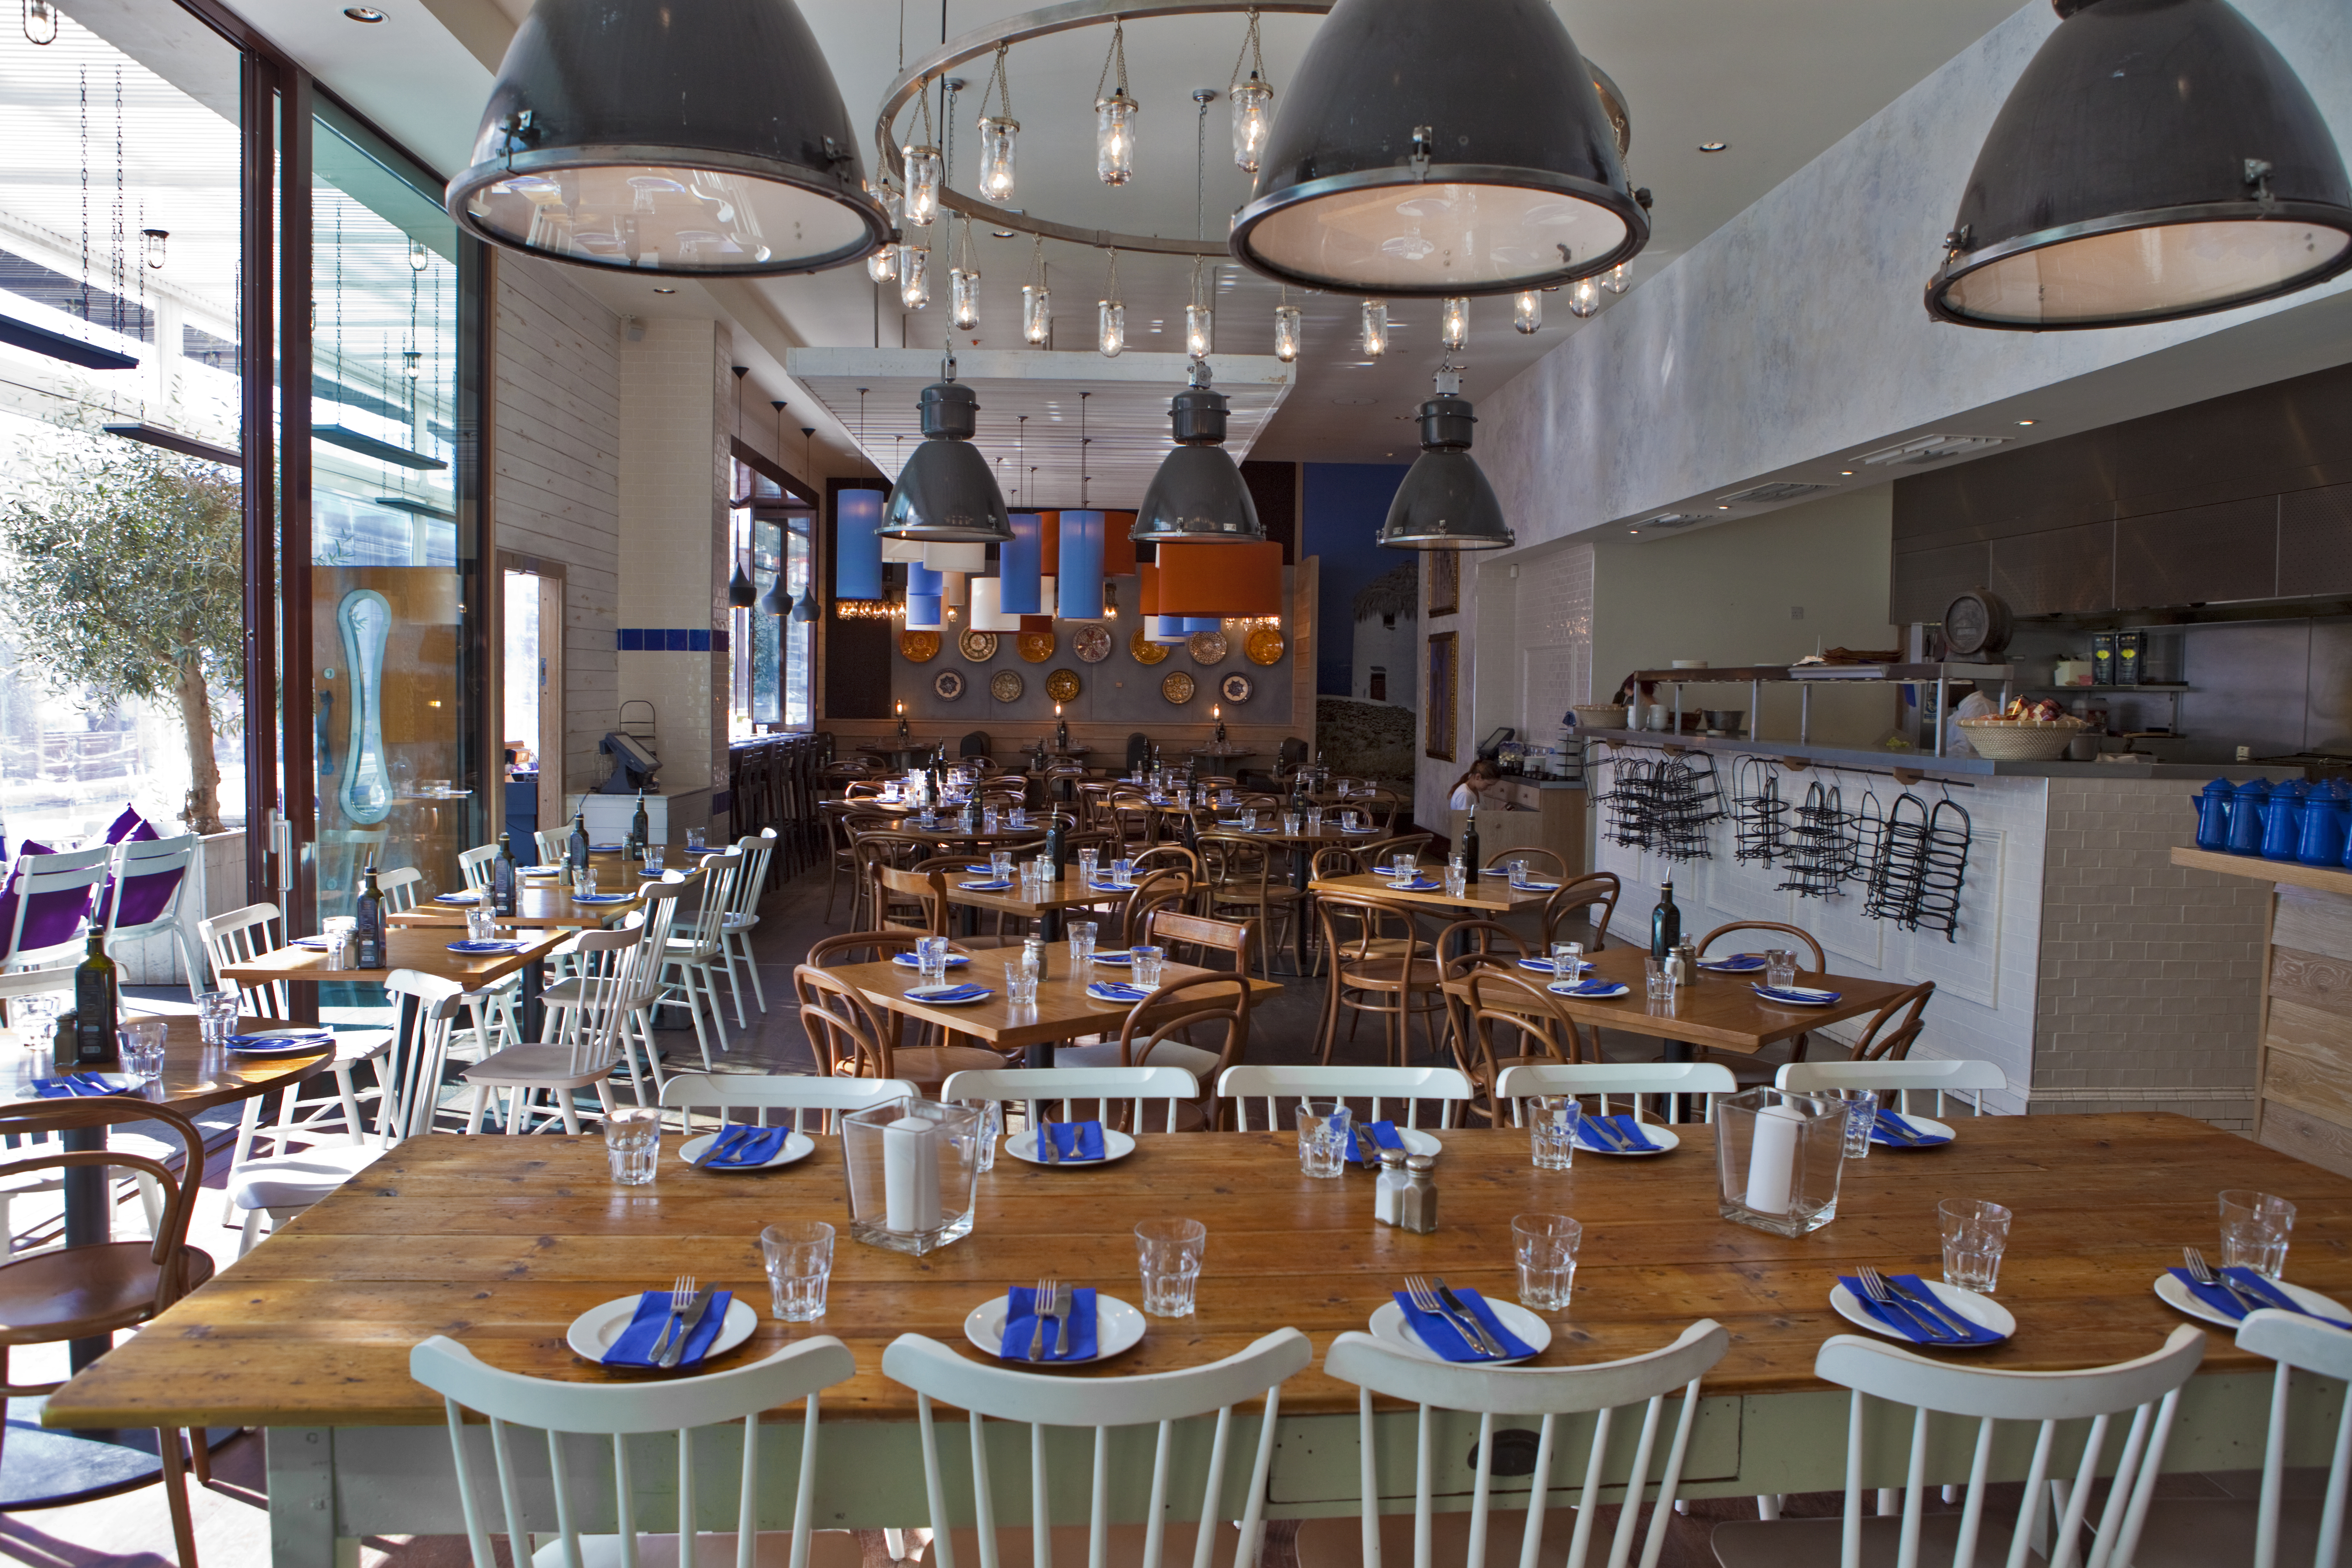 The Real Greek - Westfield Stratford City - London